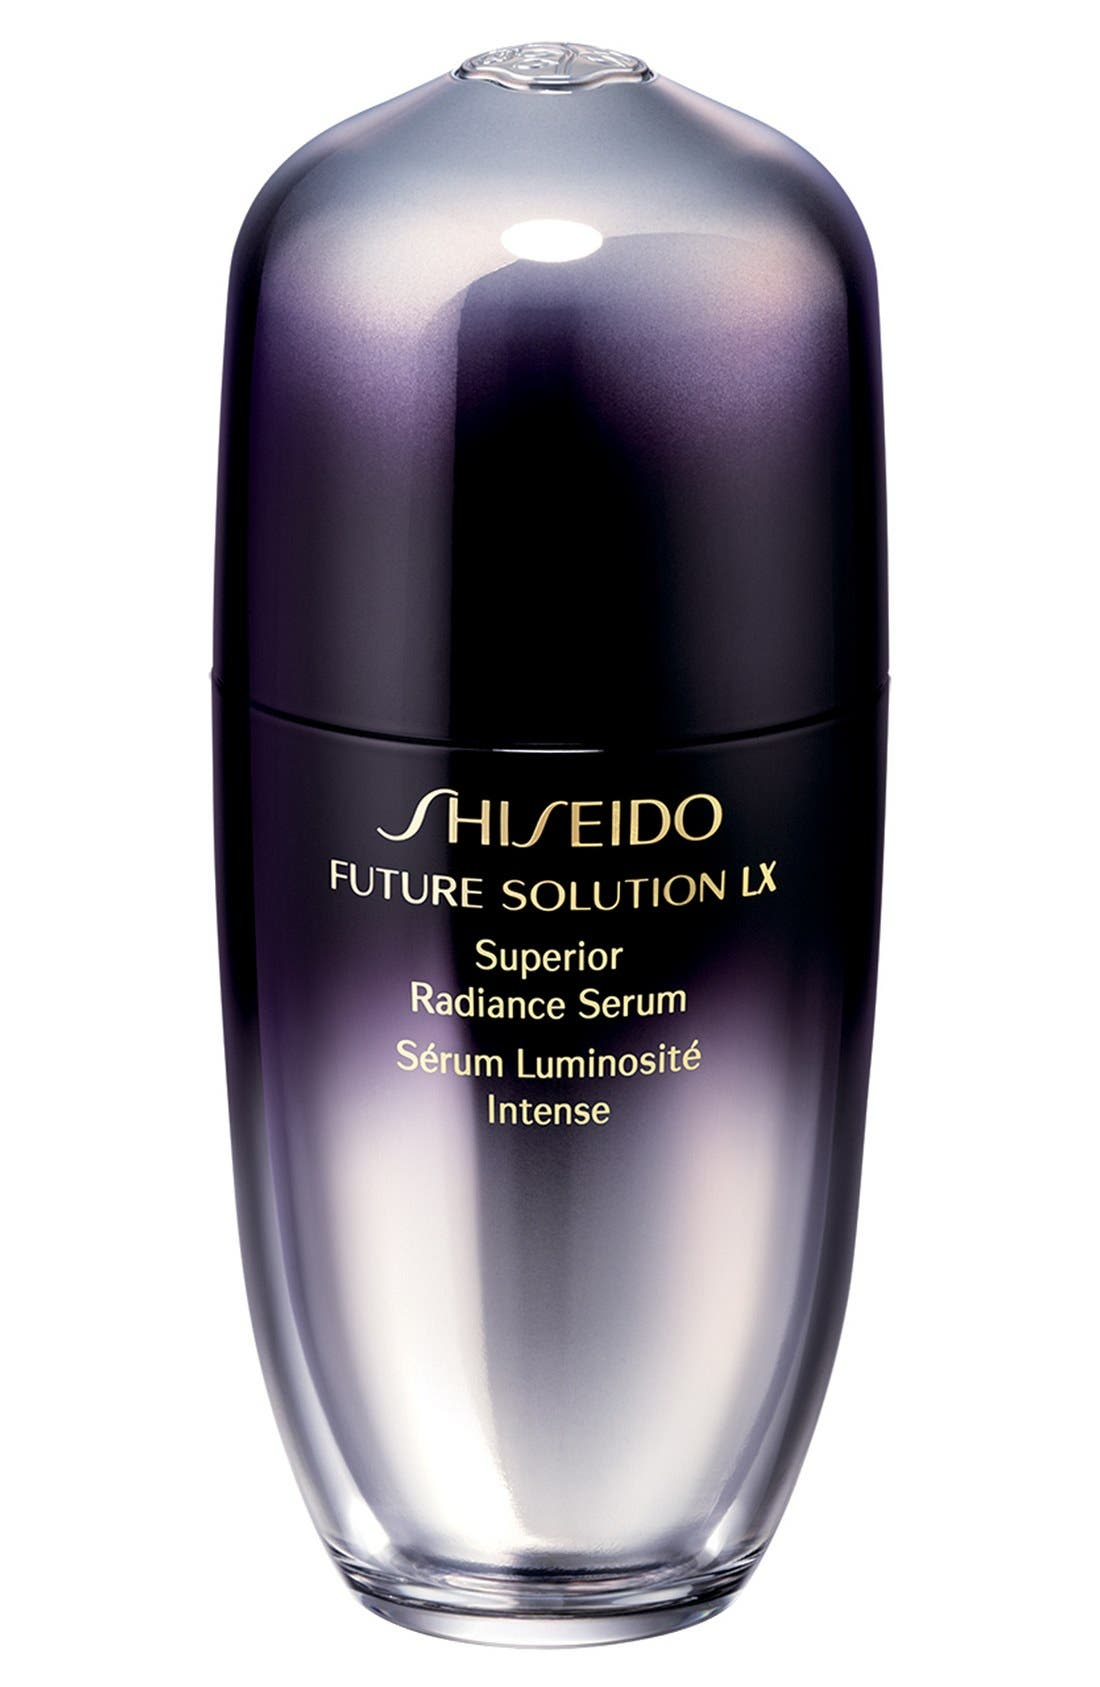 Shiseido 'Future Solution LX' Superior Radiance Serum